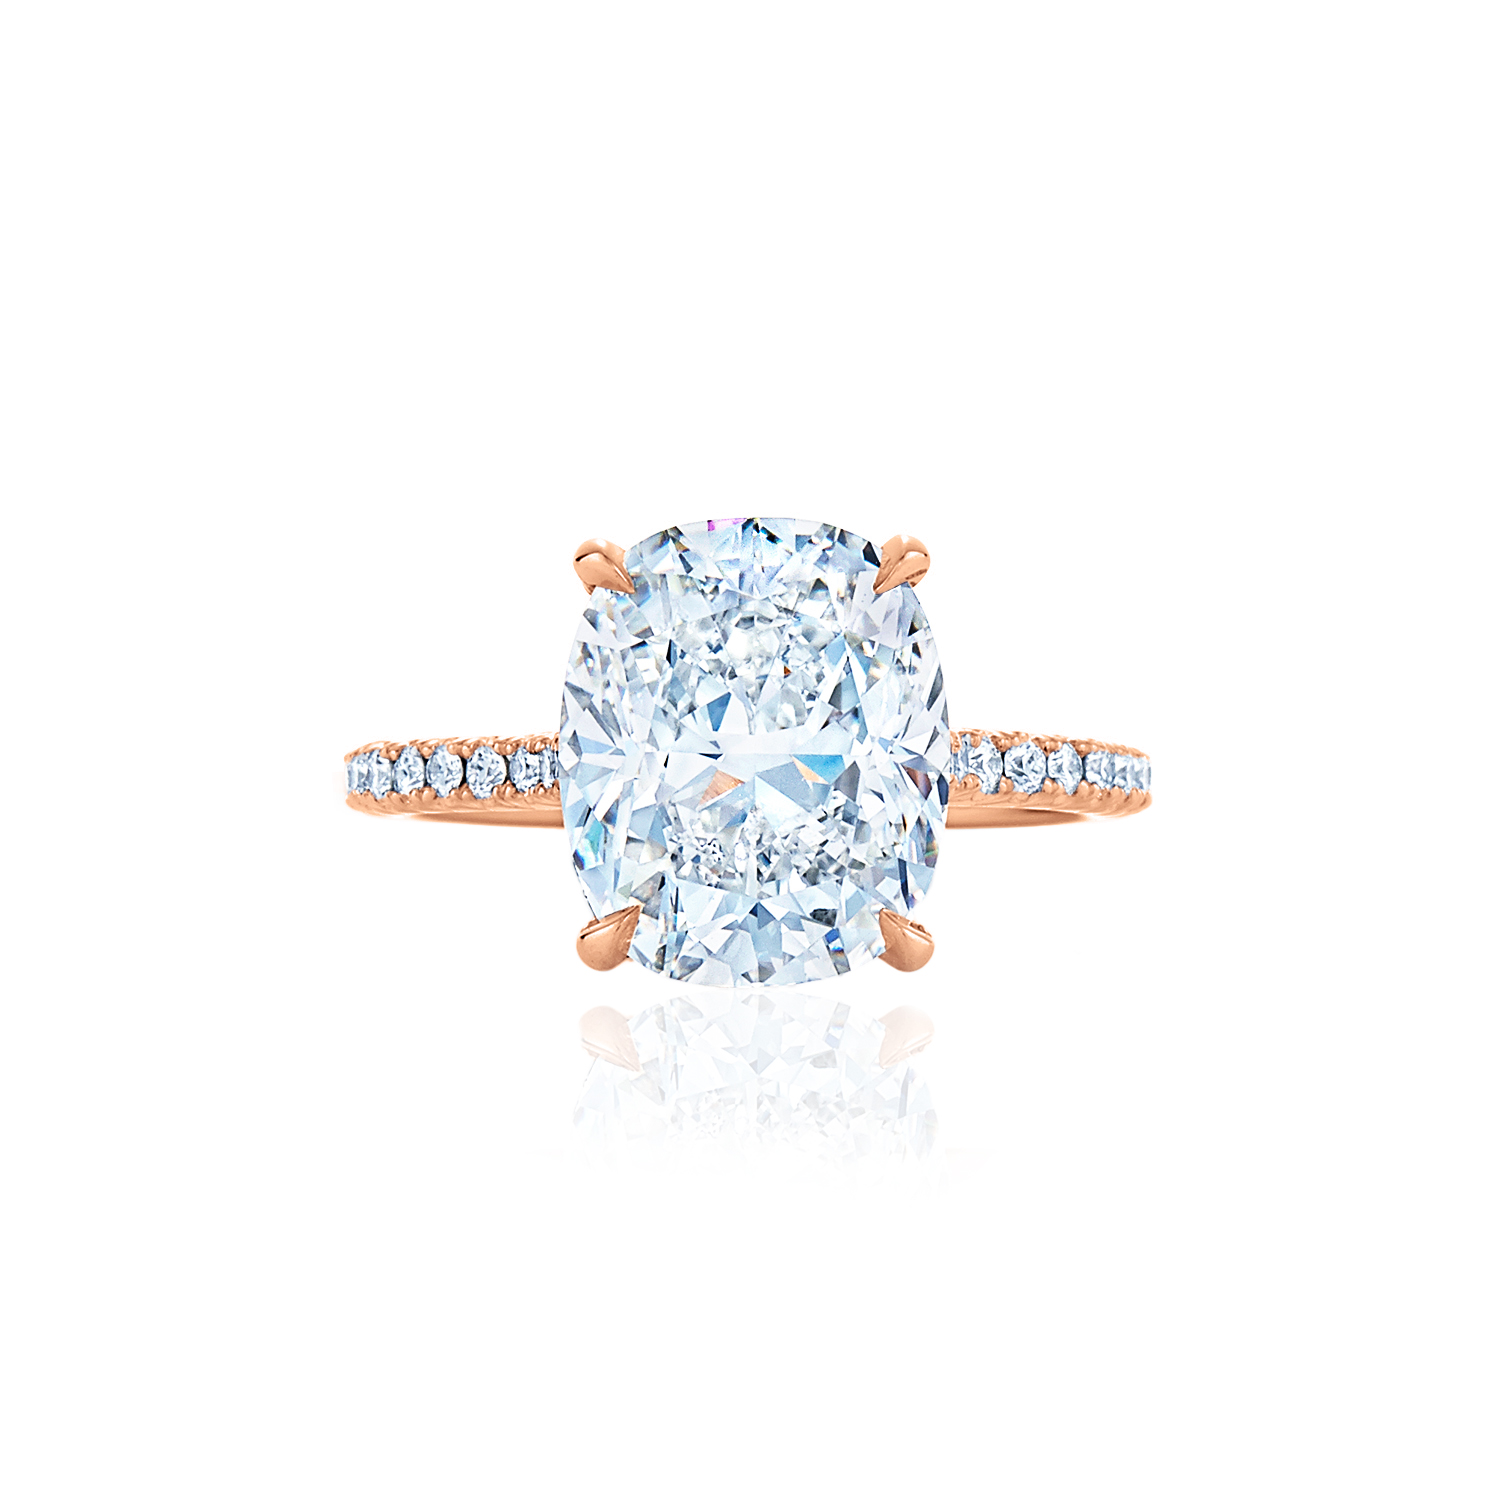 daussi engagement straight rings cusion shank henri diamond pin diamonds